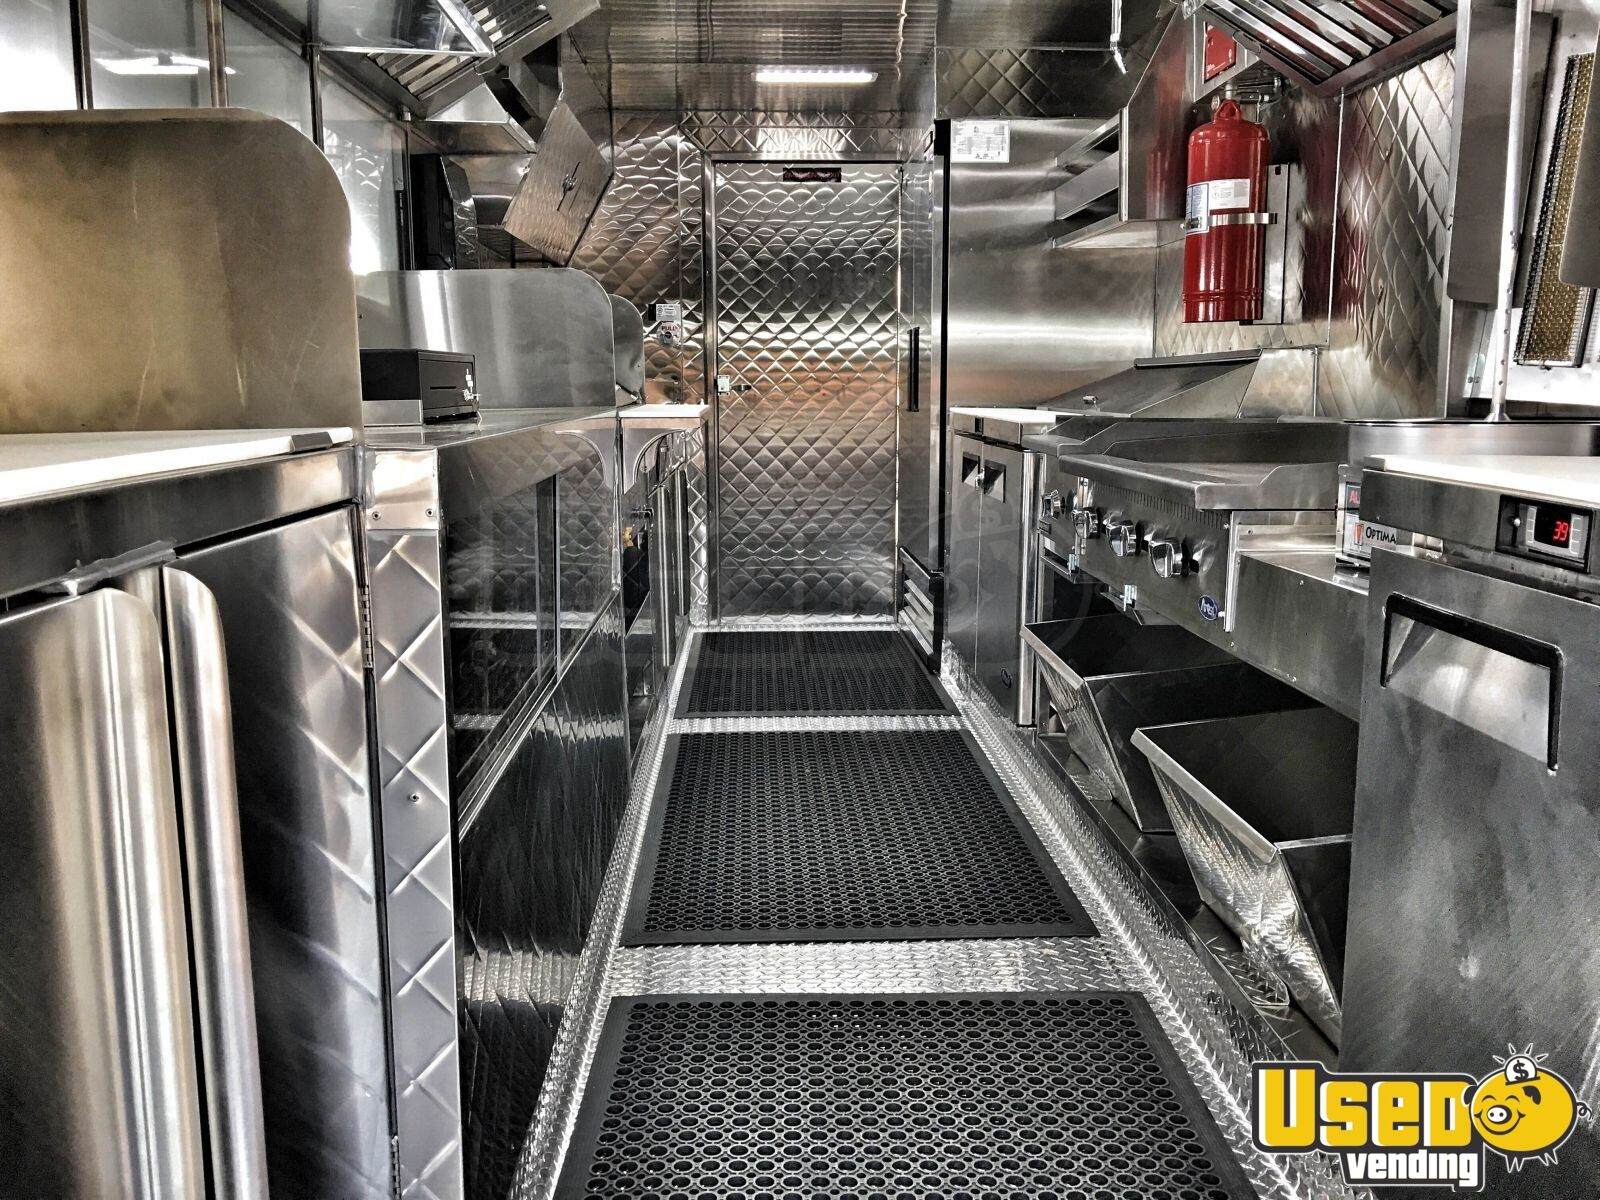 1995 Chevrolet Barbecue Food Truck Stainless Steel Wall Covers California Diesel Engine for Sale - 5